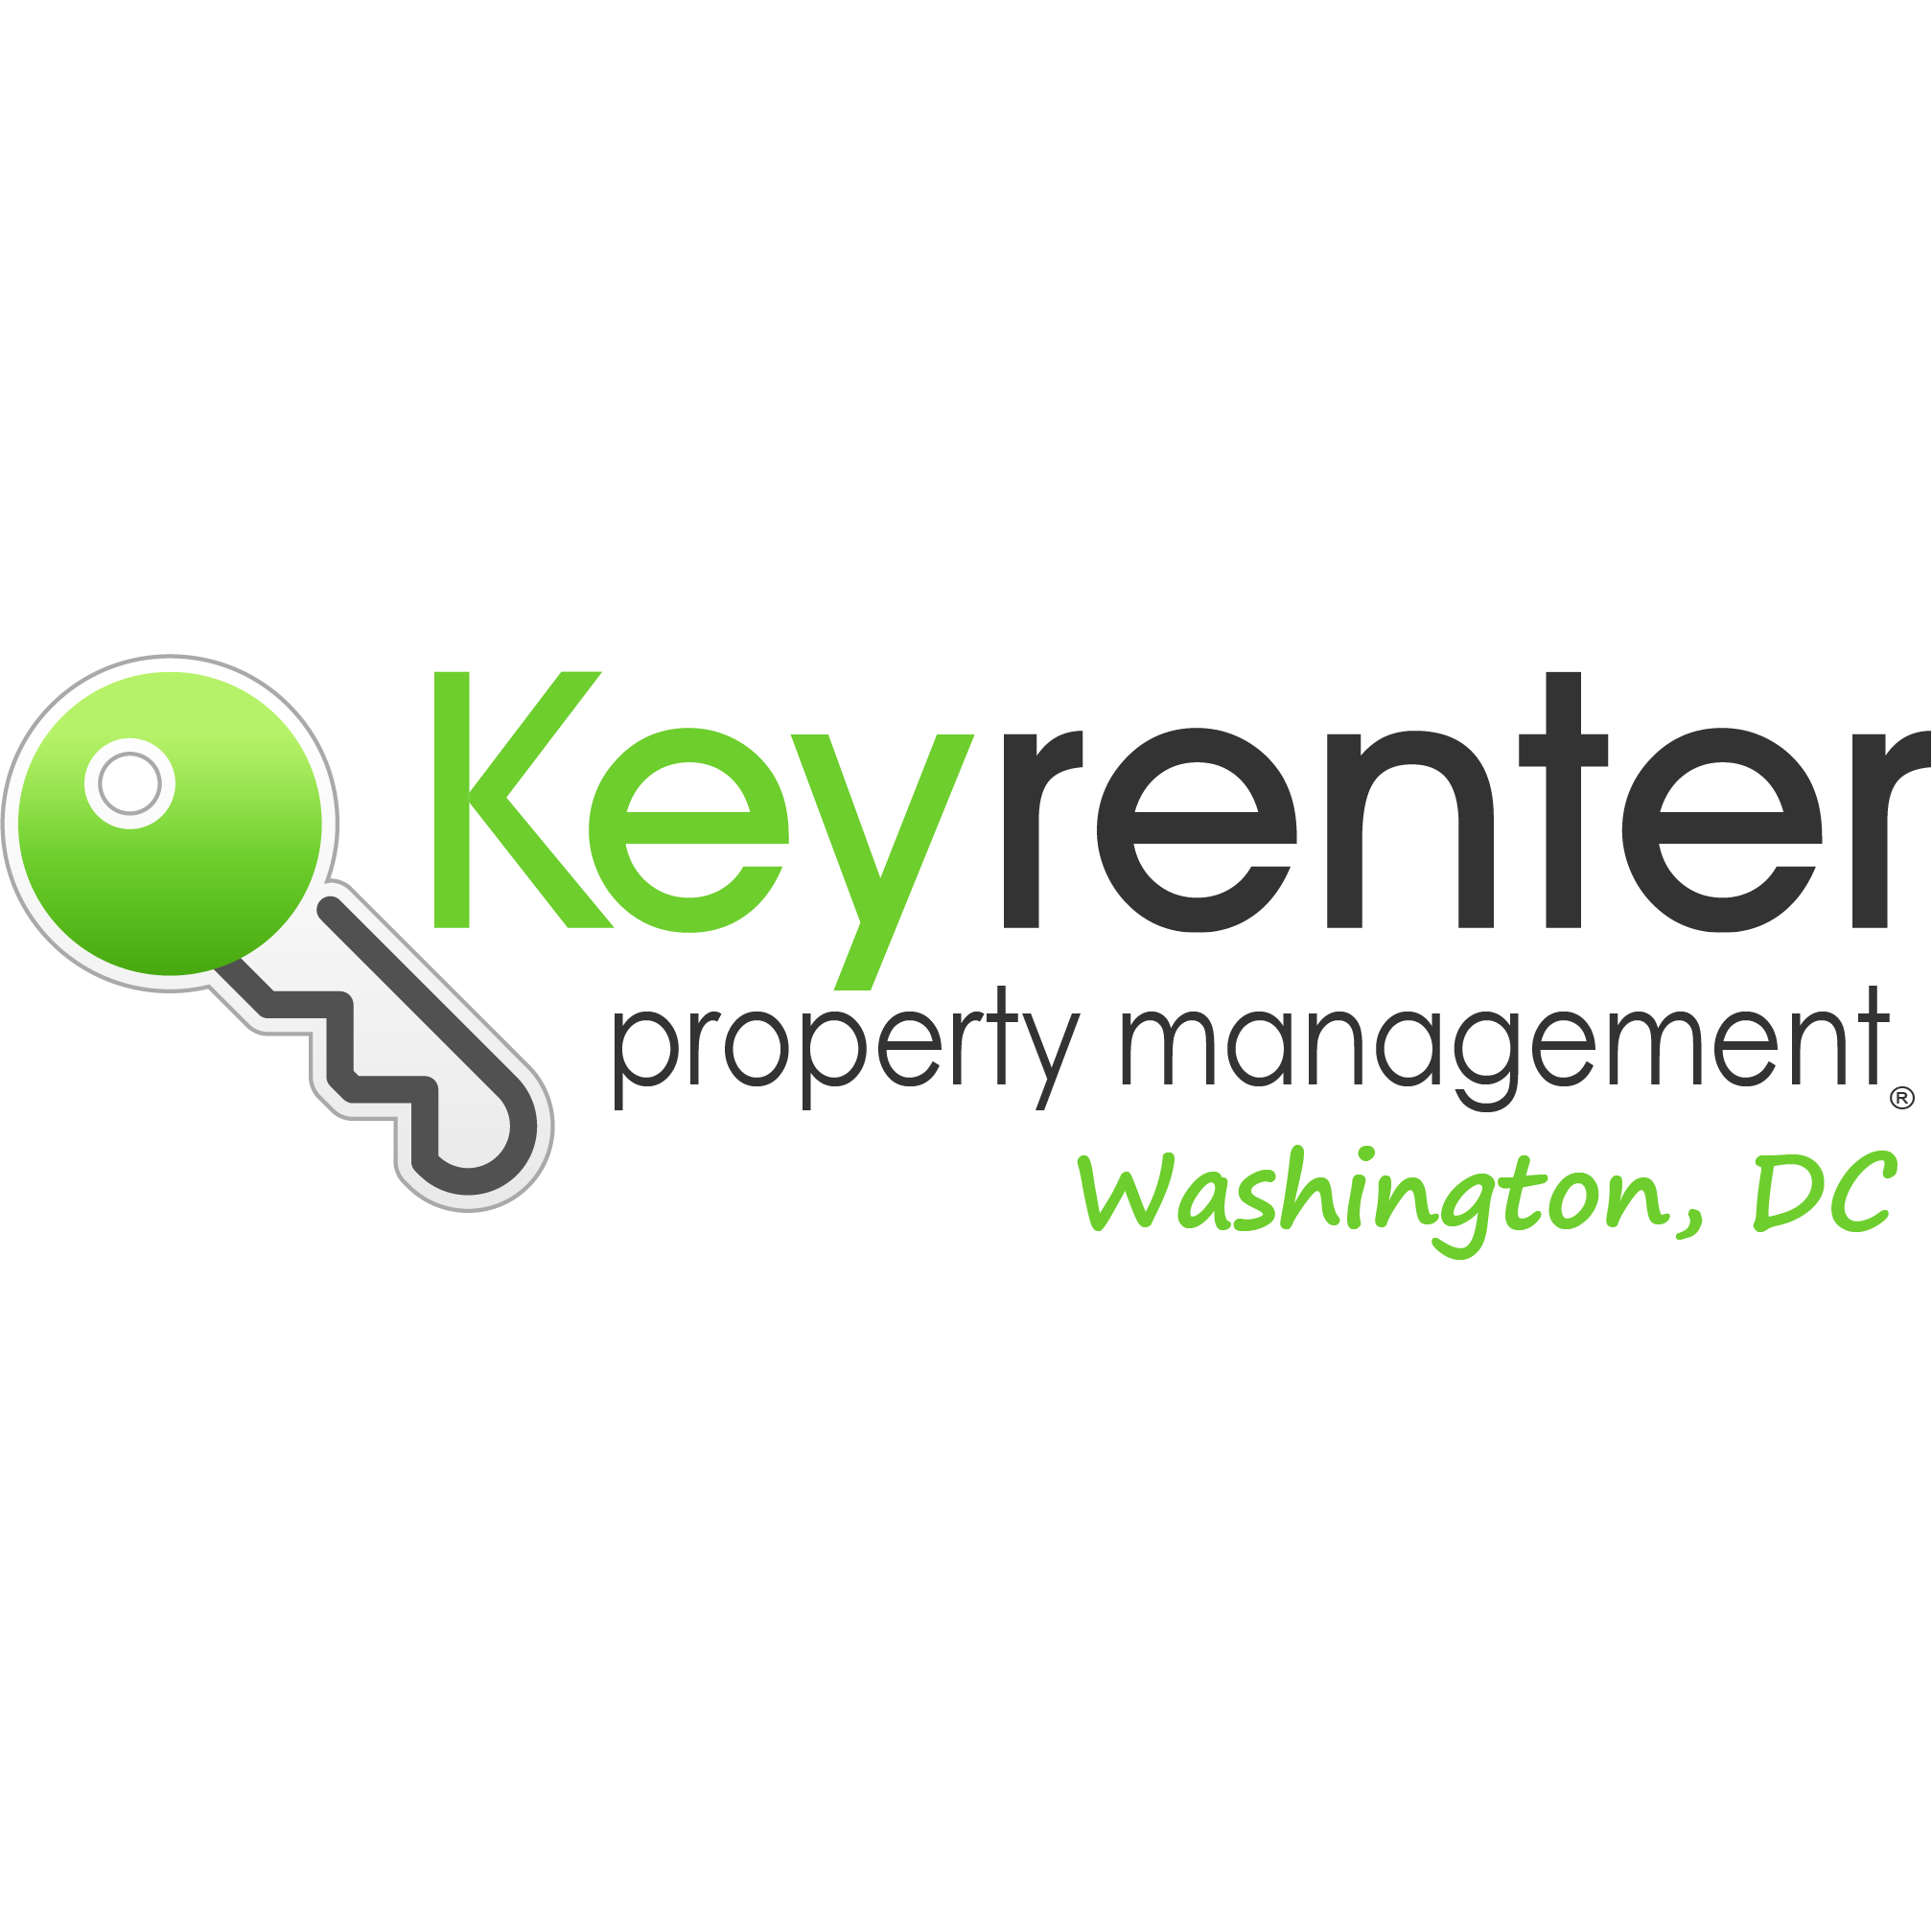 Keyrenter Property Management Washington, DC image 0